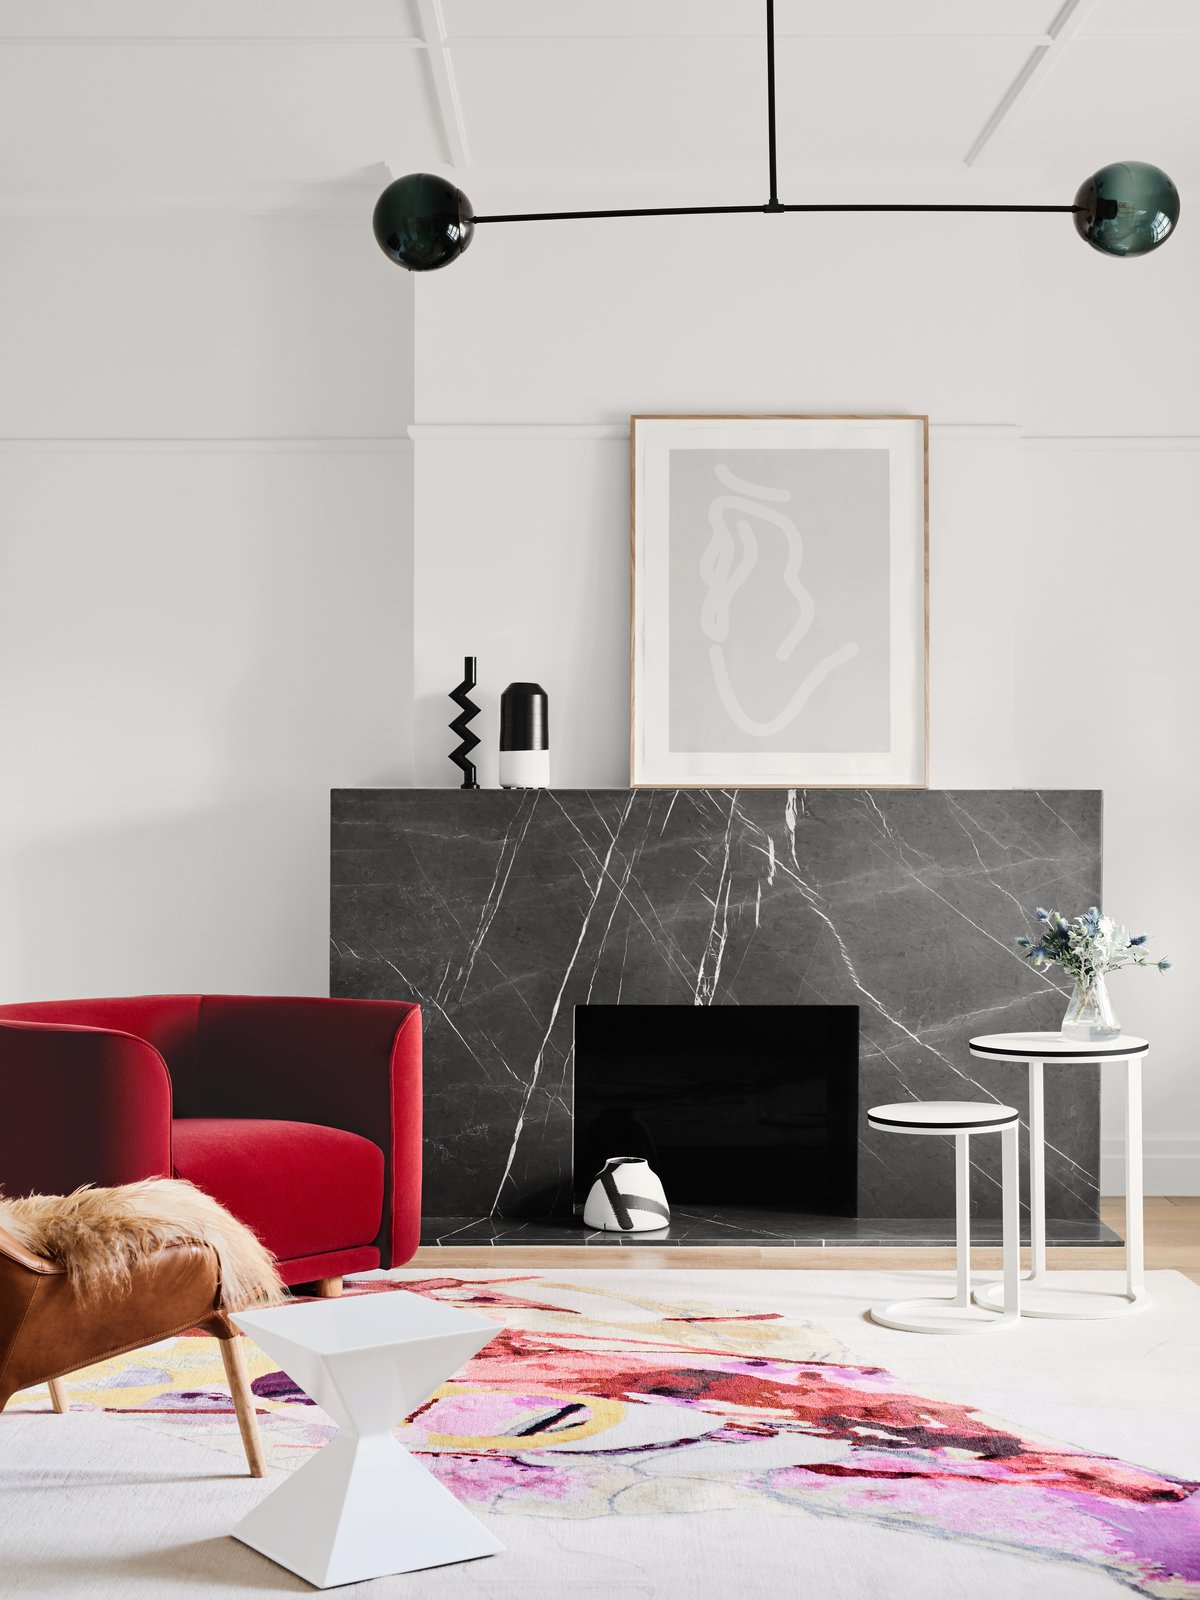 Living Room, Stools, Chair, End Tables, Pendant Lighting, Standard Layout Fireplace, Light Hardwood Floor, and Rug Floor  Photo 6 of 10 in A Run-Down Melbourne Bungalow's Makeover Embraces Light and Family Life